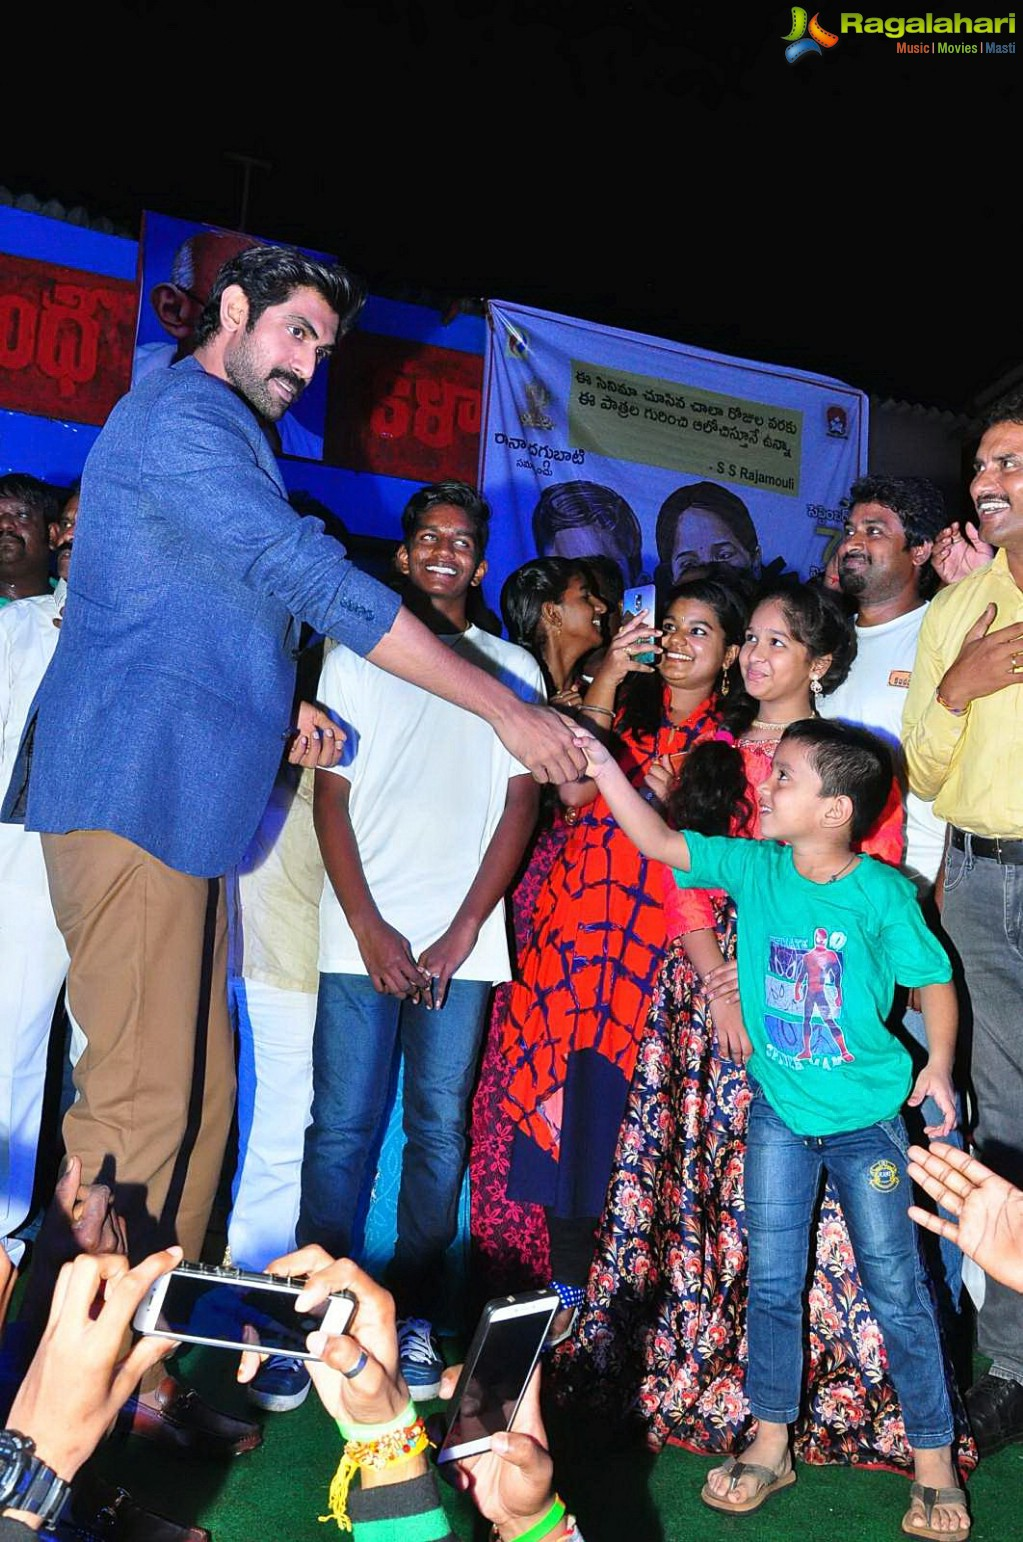 Photos Rana Meets And Greets Kancharapalem People